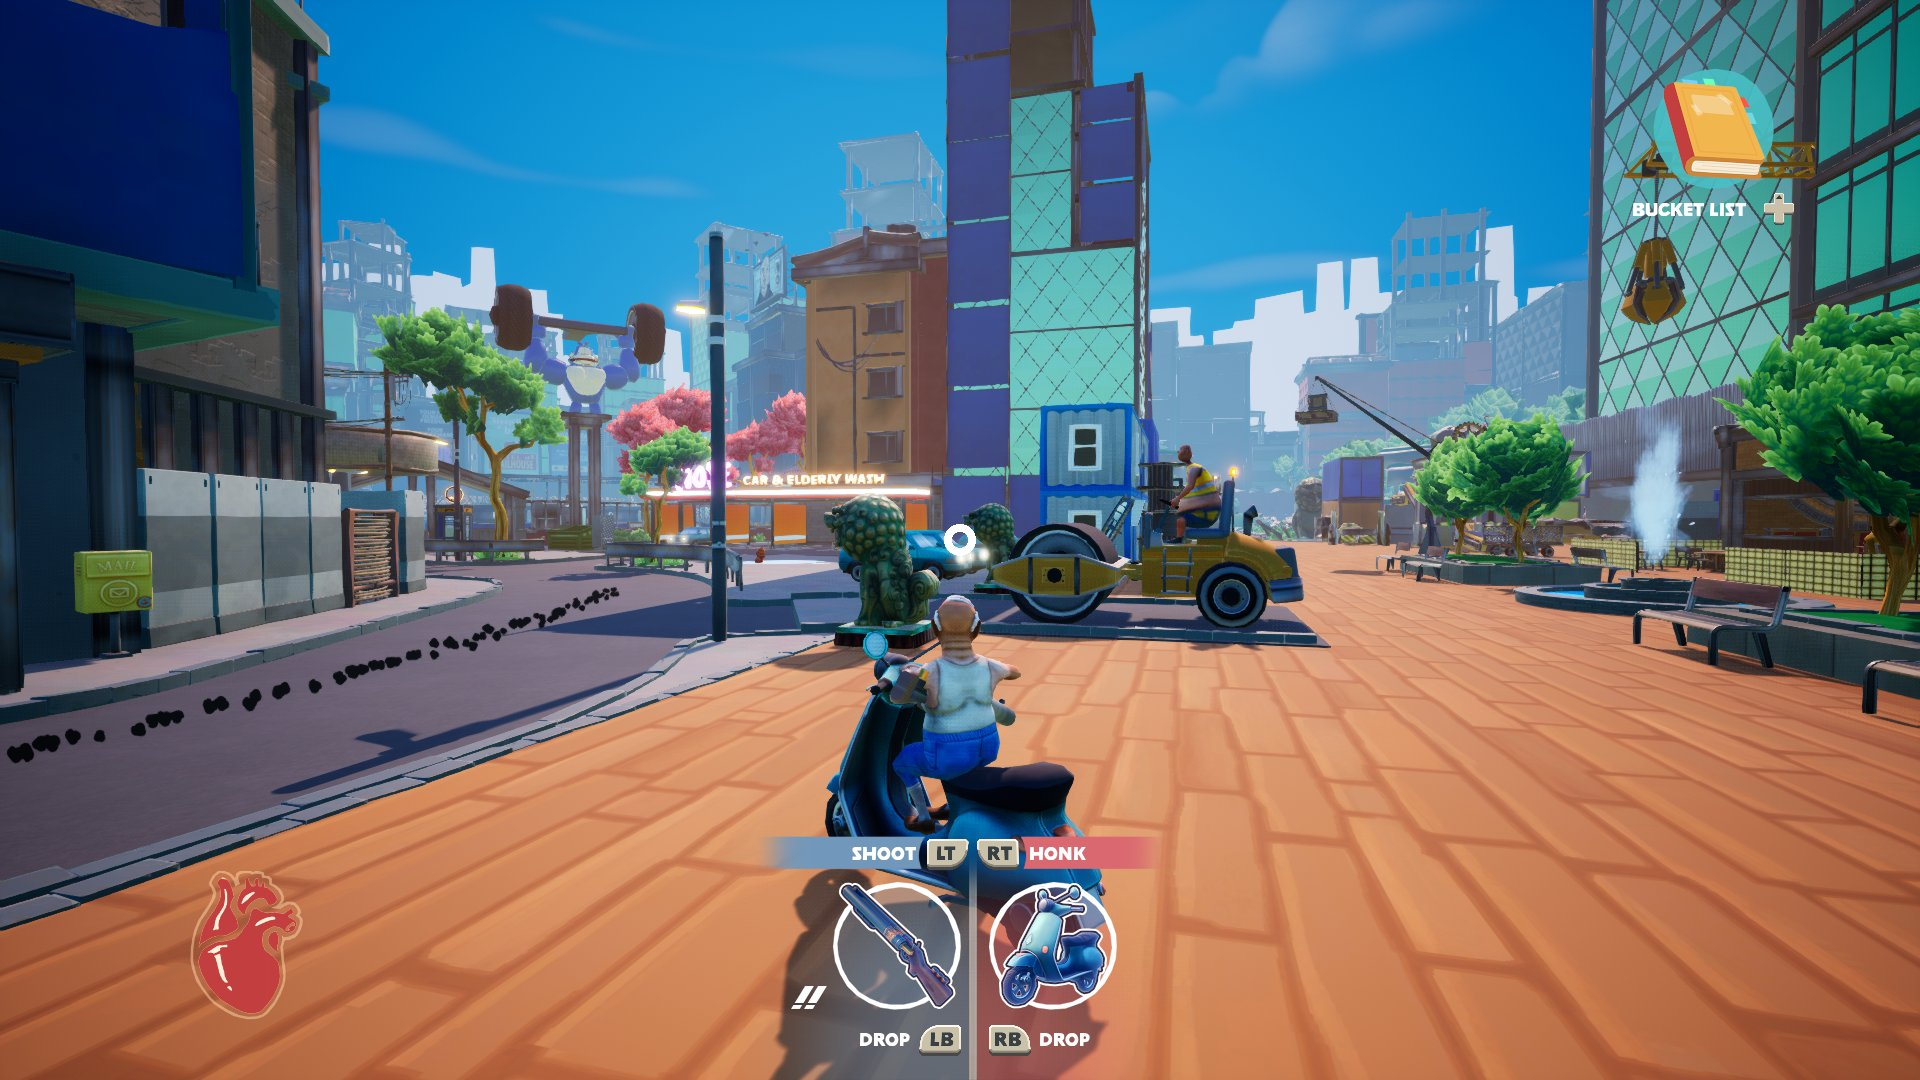 A screenshot from Just Die Already, your old man is riding a moped through a cityscape.